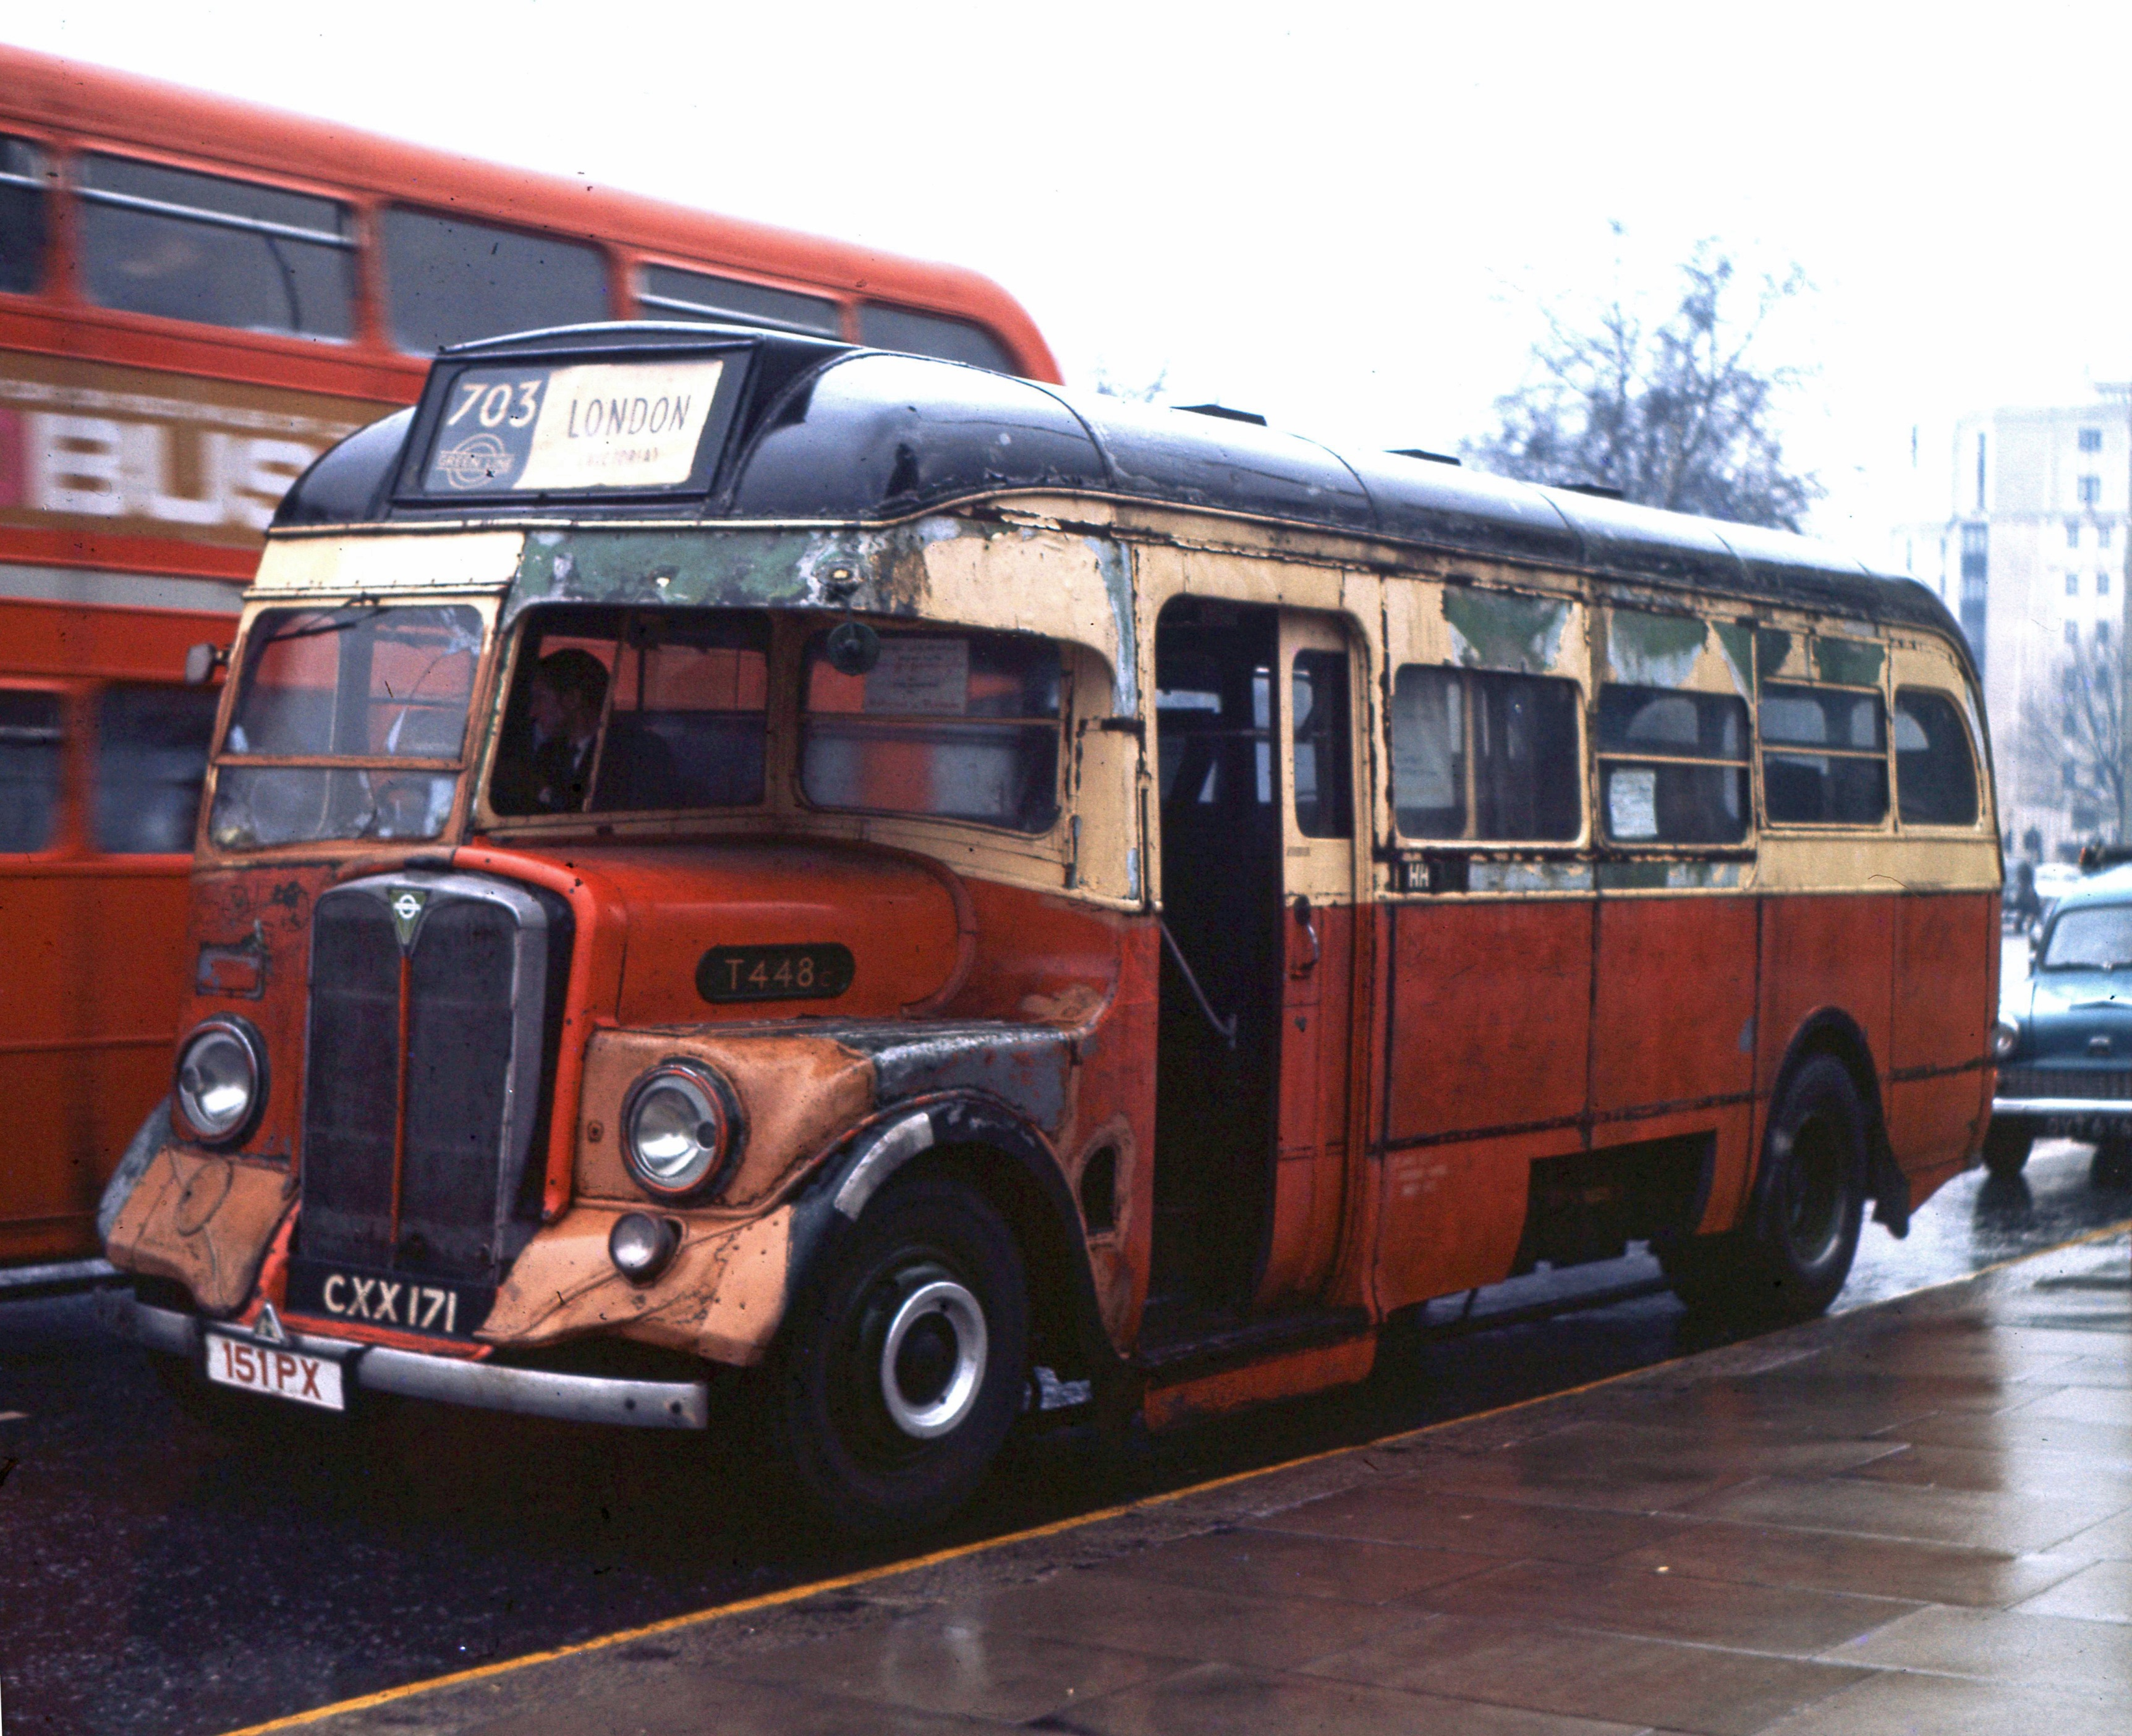 1936 AEC Regal I coach - T448 - London Bus Museum